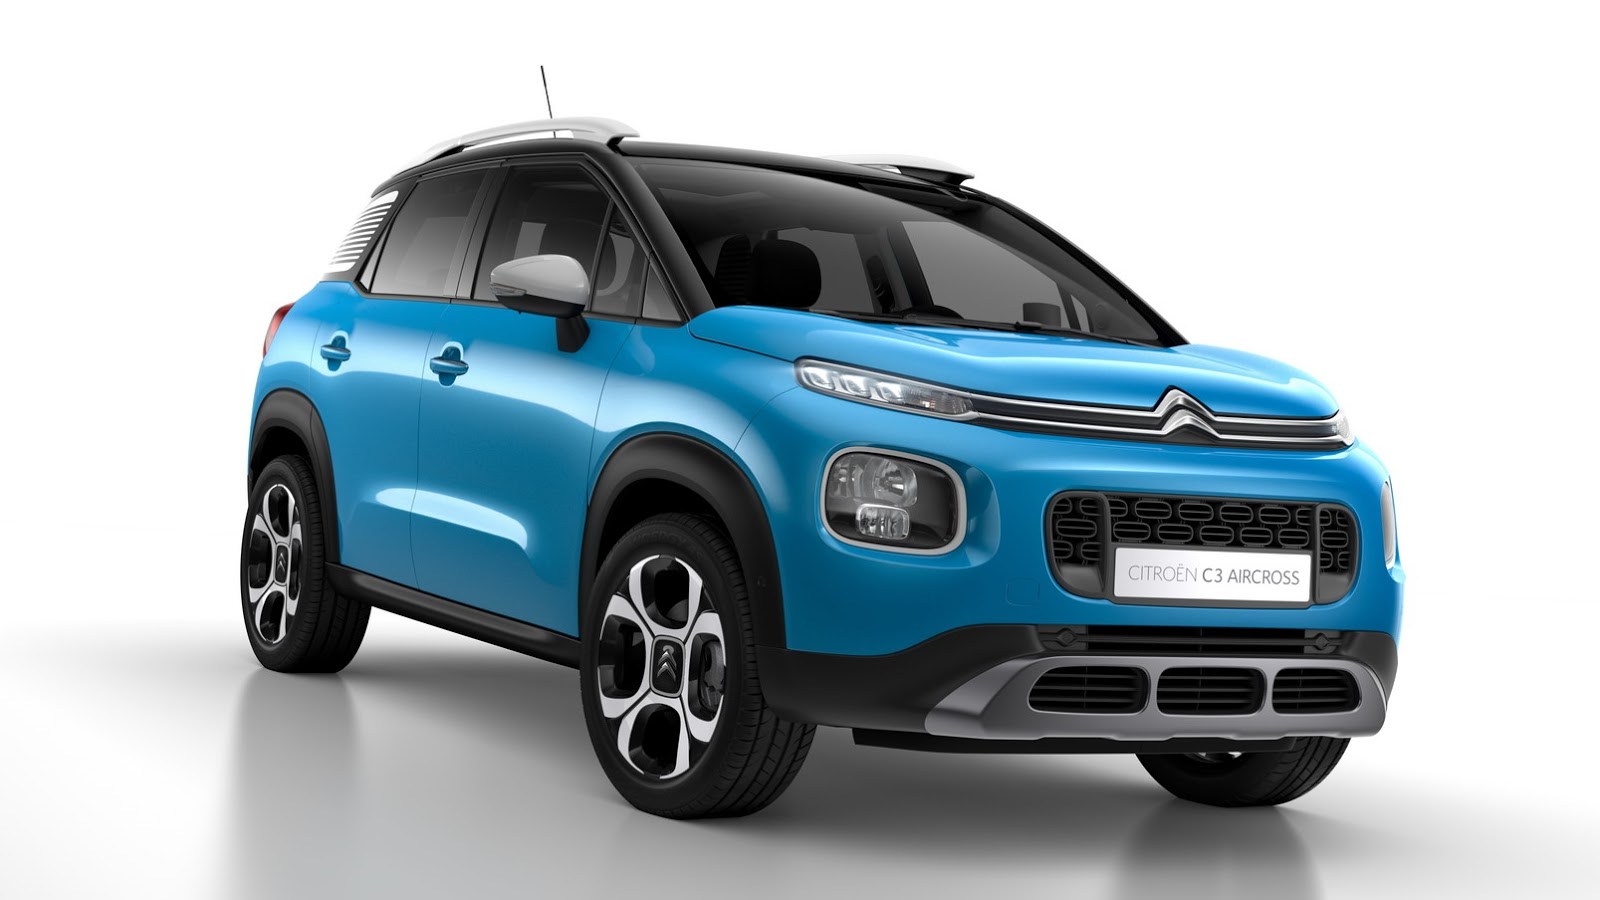 mandataire citroen c3 aircross bluehdi 100 s s shine. Black Bedroom Furniture Sets. Home Design Ideas